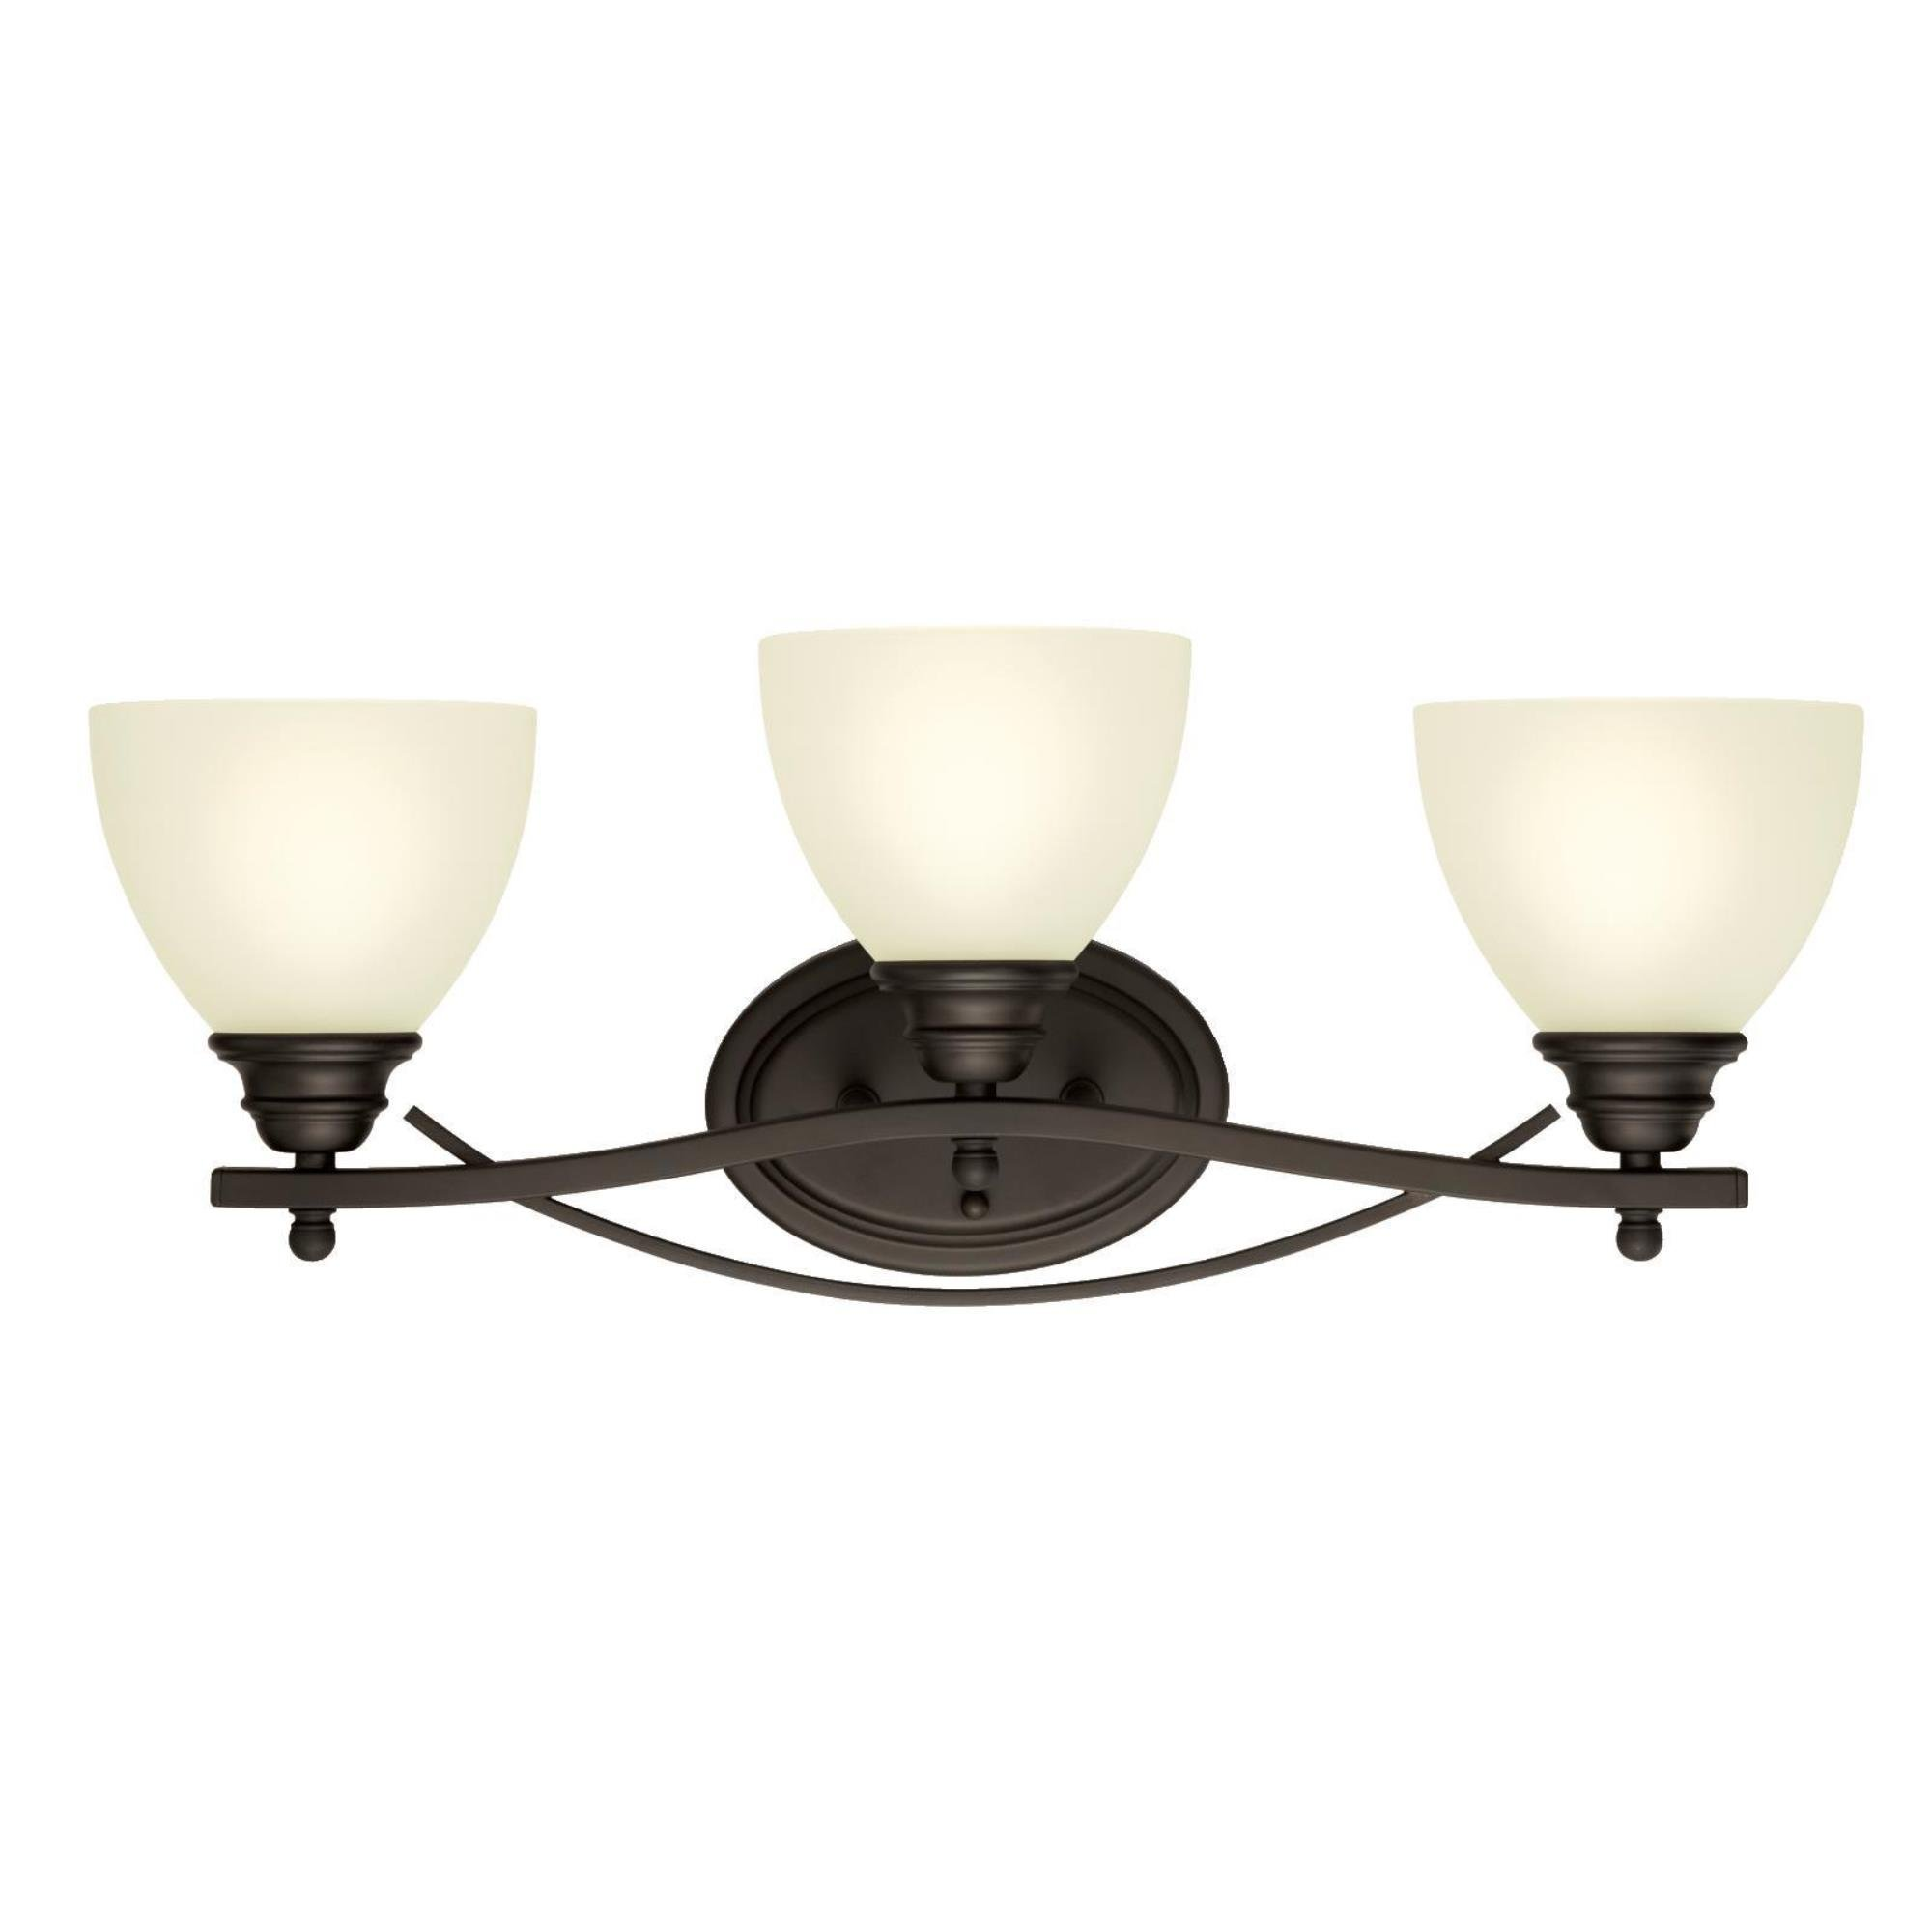 Westinghouse 6303400 Elvaston Three-Light Indoor Wall Fixture, Oil Rubbed Bronze Finish with Frosted Glass